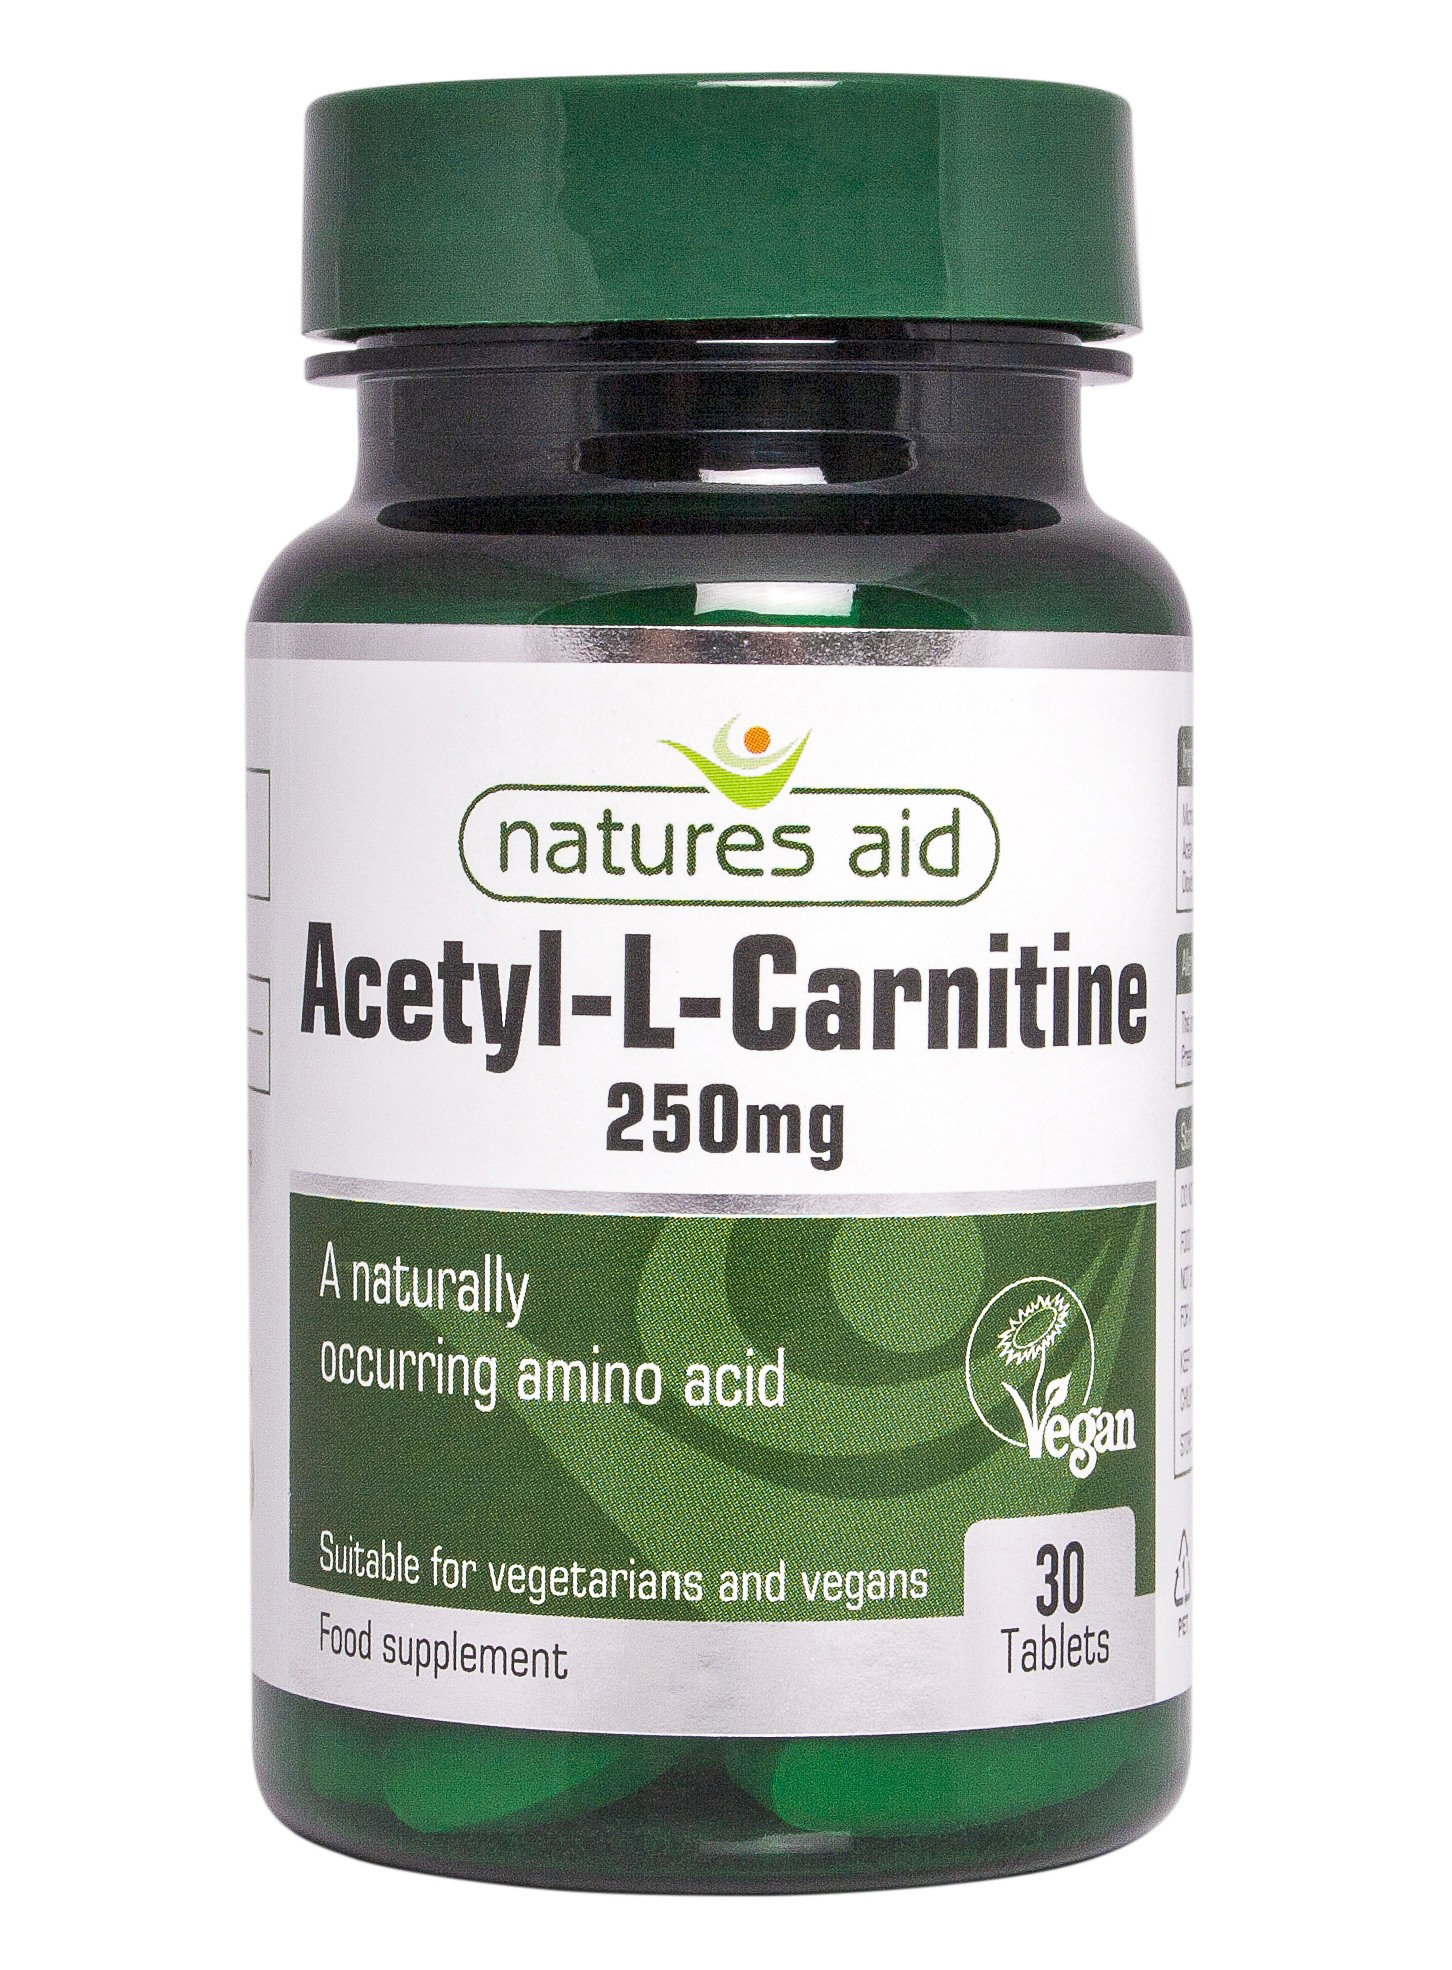 Nature's Aid Acetyl-L-Carnitine, 250mg - 30 tablets